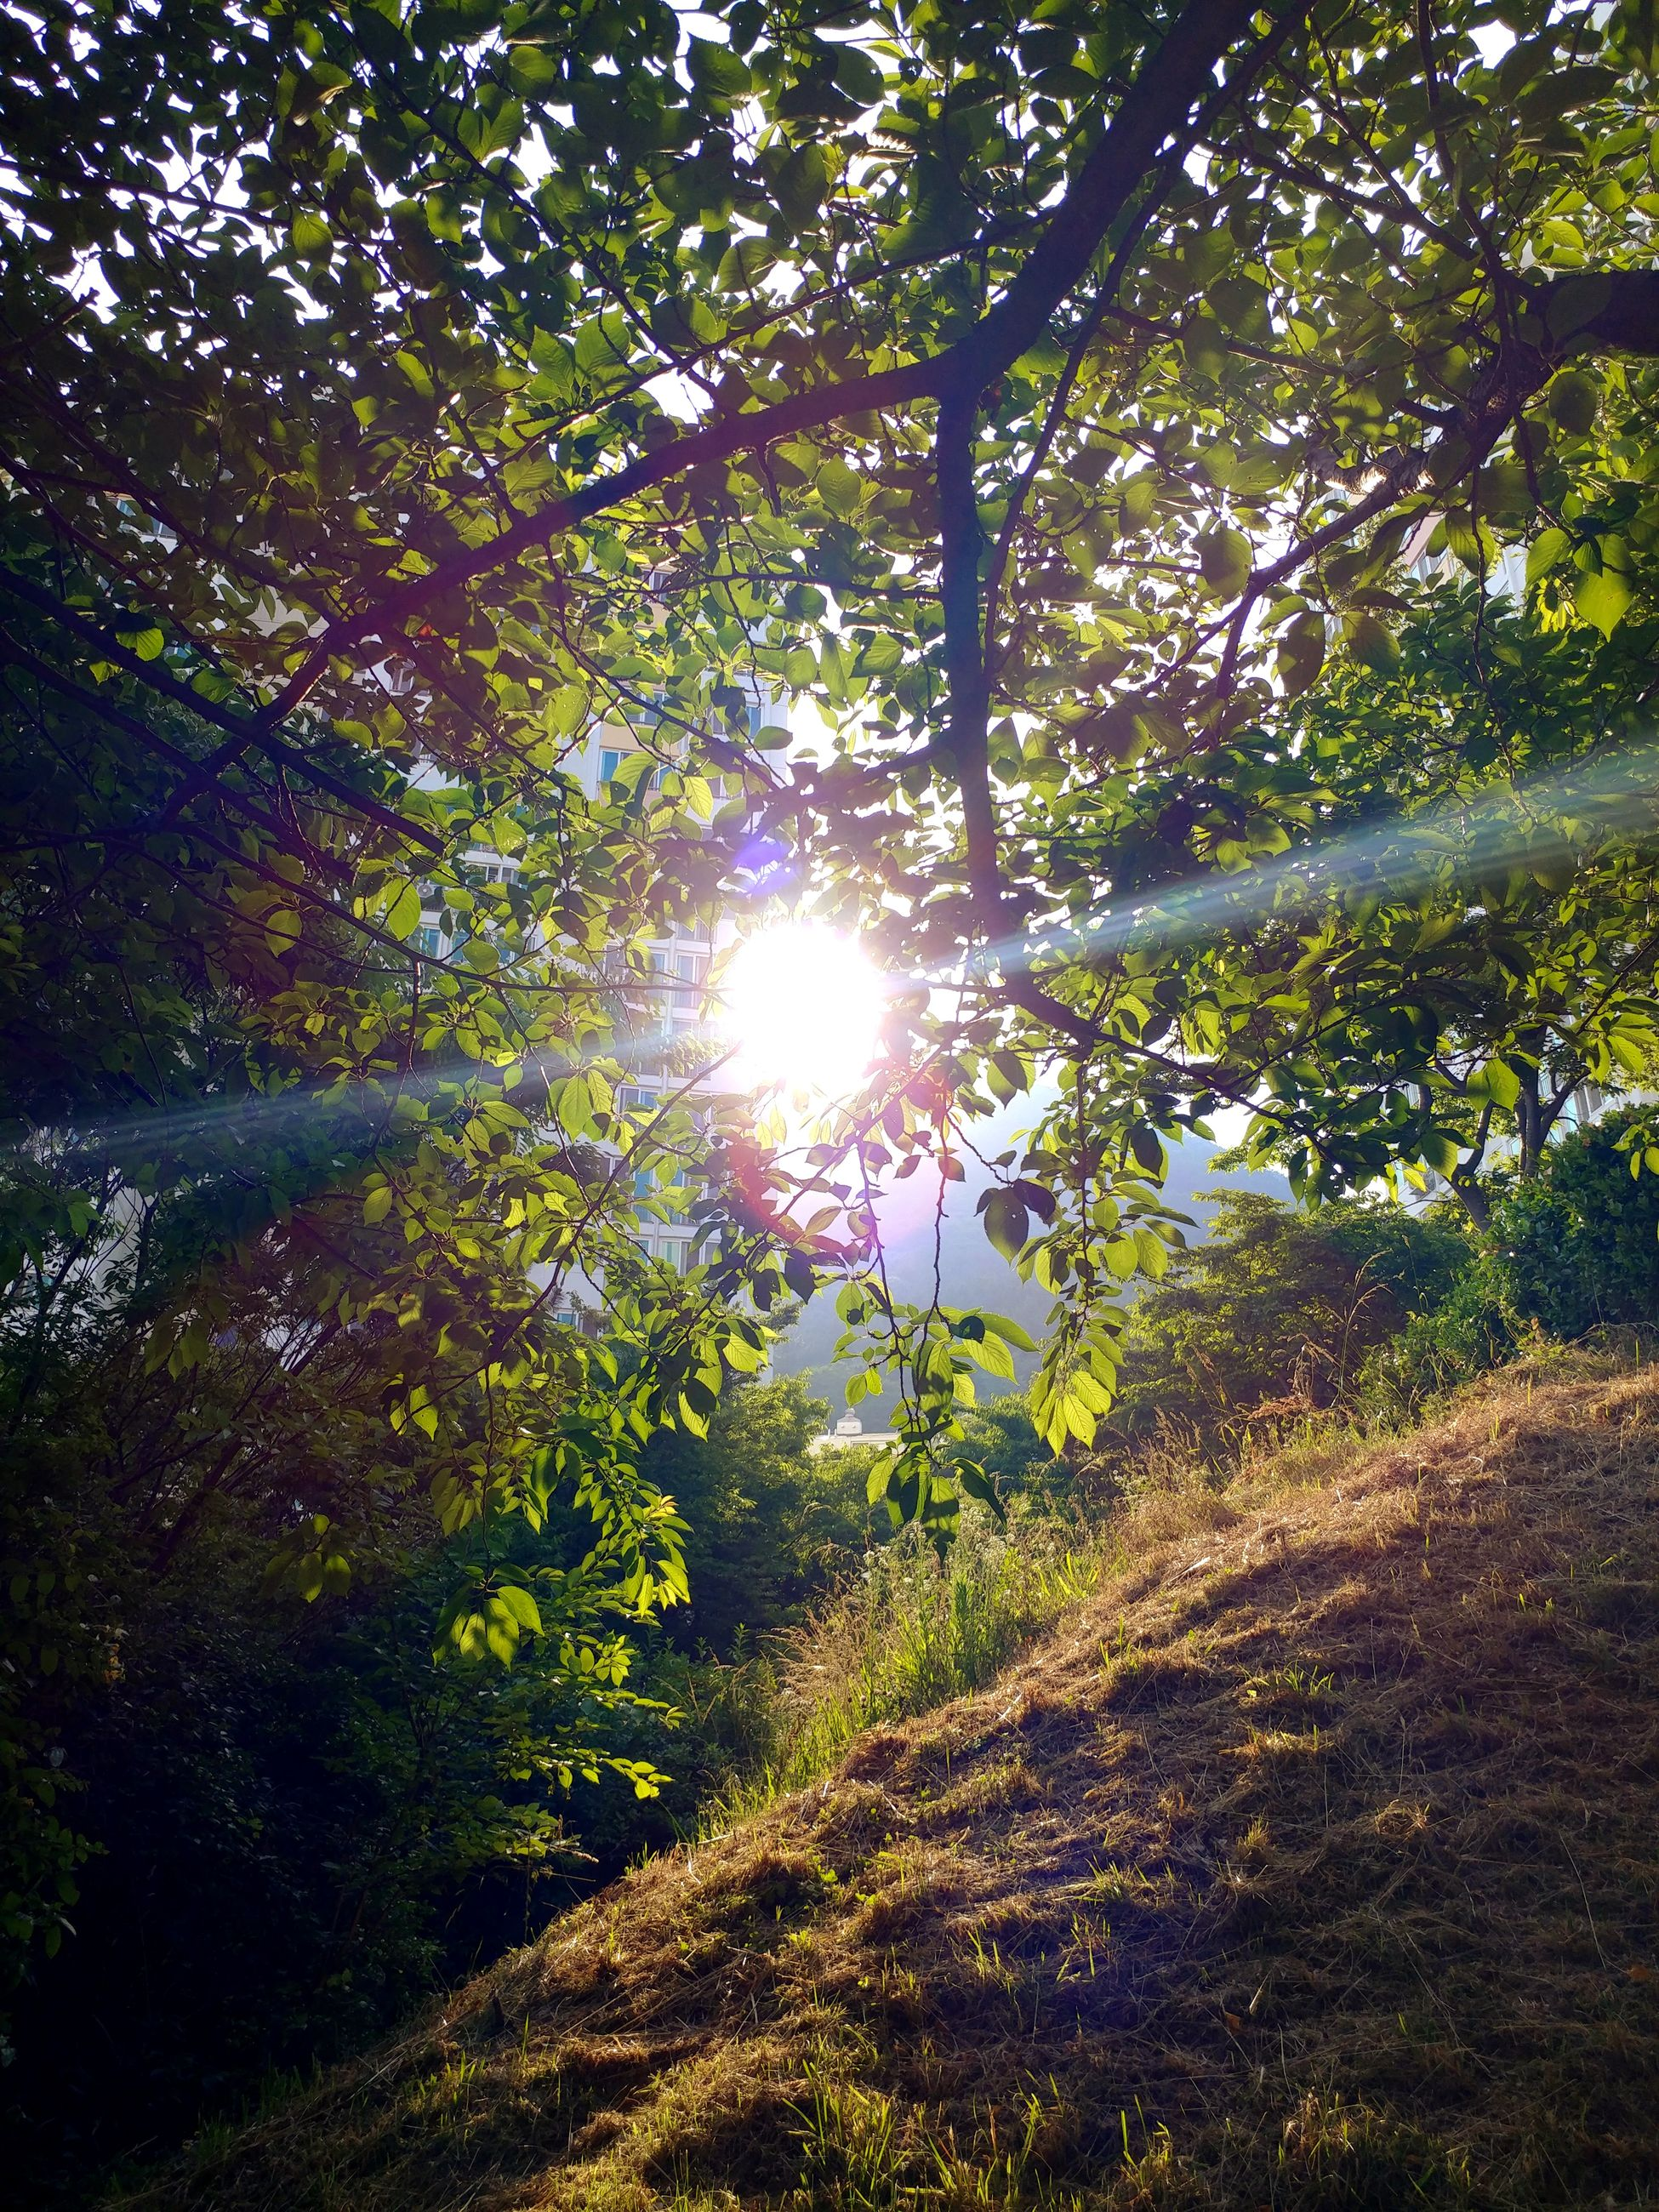 nature, tree, sunbeam, sun, growth, sunlight, lens flare, beauty in nature, tranquility, outdoors, tranquil scene, scenics, no people, day, forest, branch, plant, grass